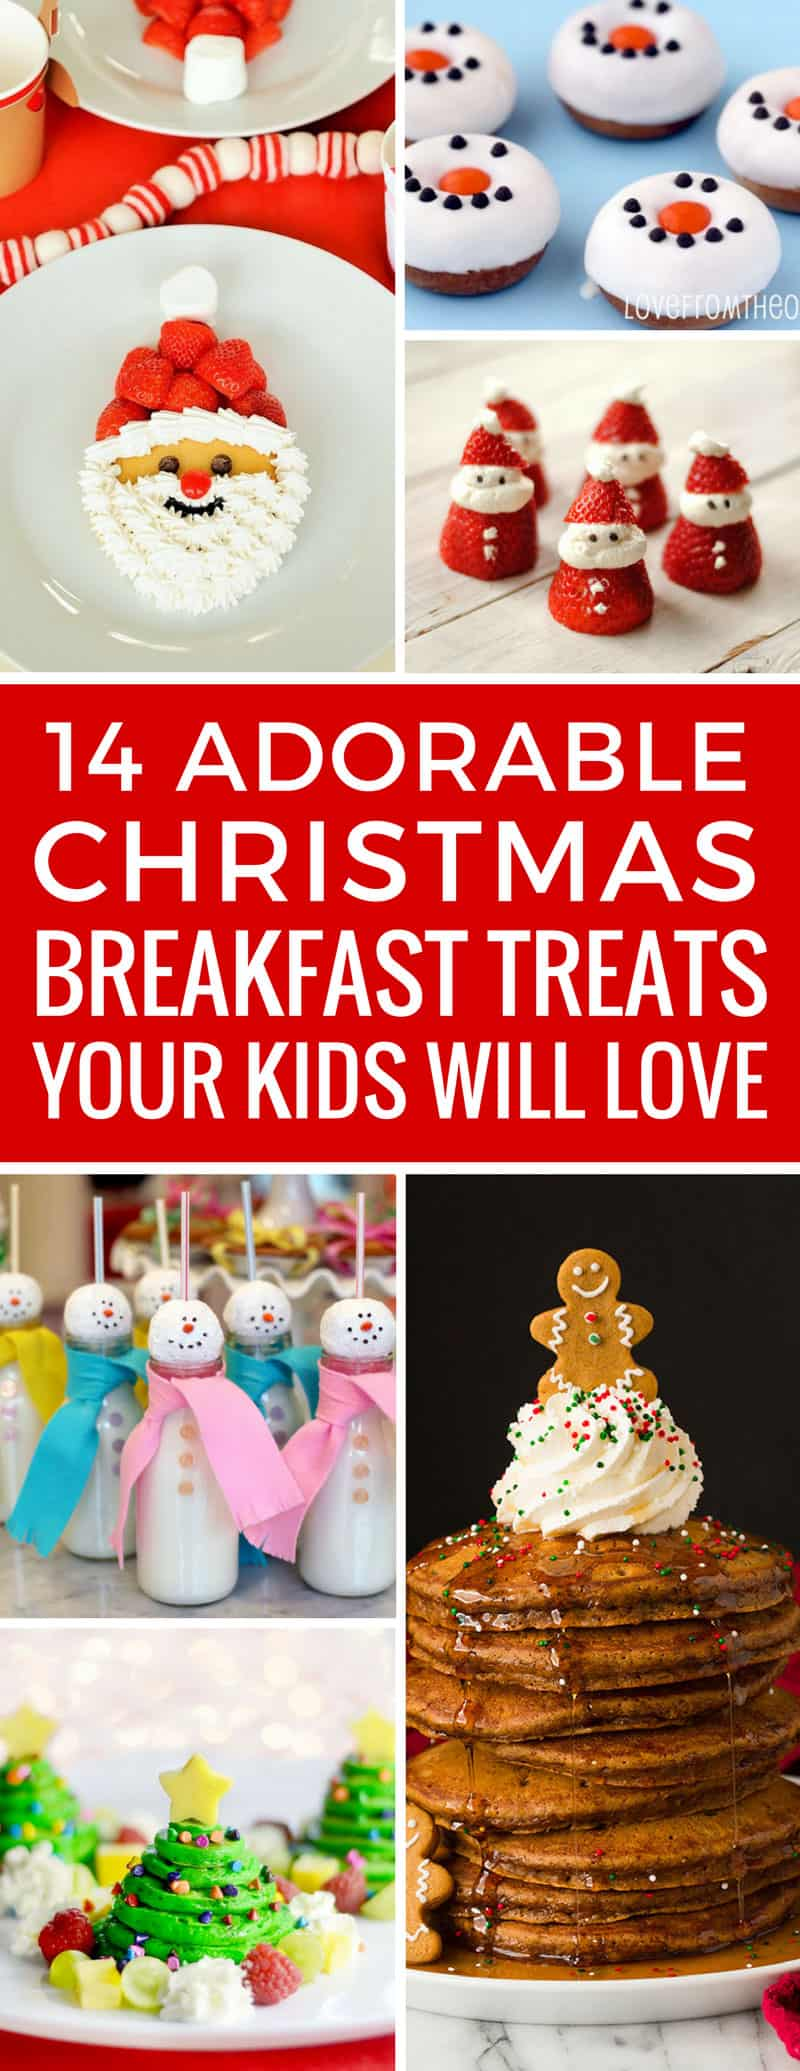 Oh my - how cute are these Christmas breakfast treats! The kids are going to go crazy for these - and might actually start eating breakfast! Thanks for sharing!